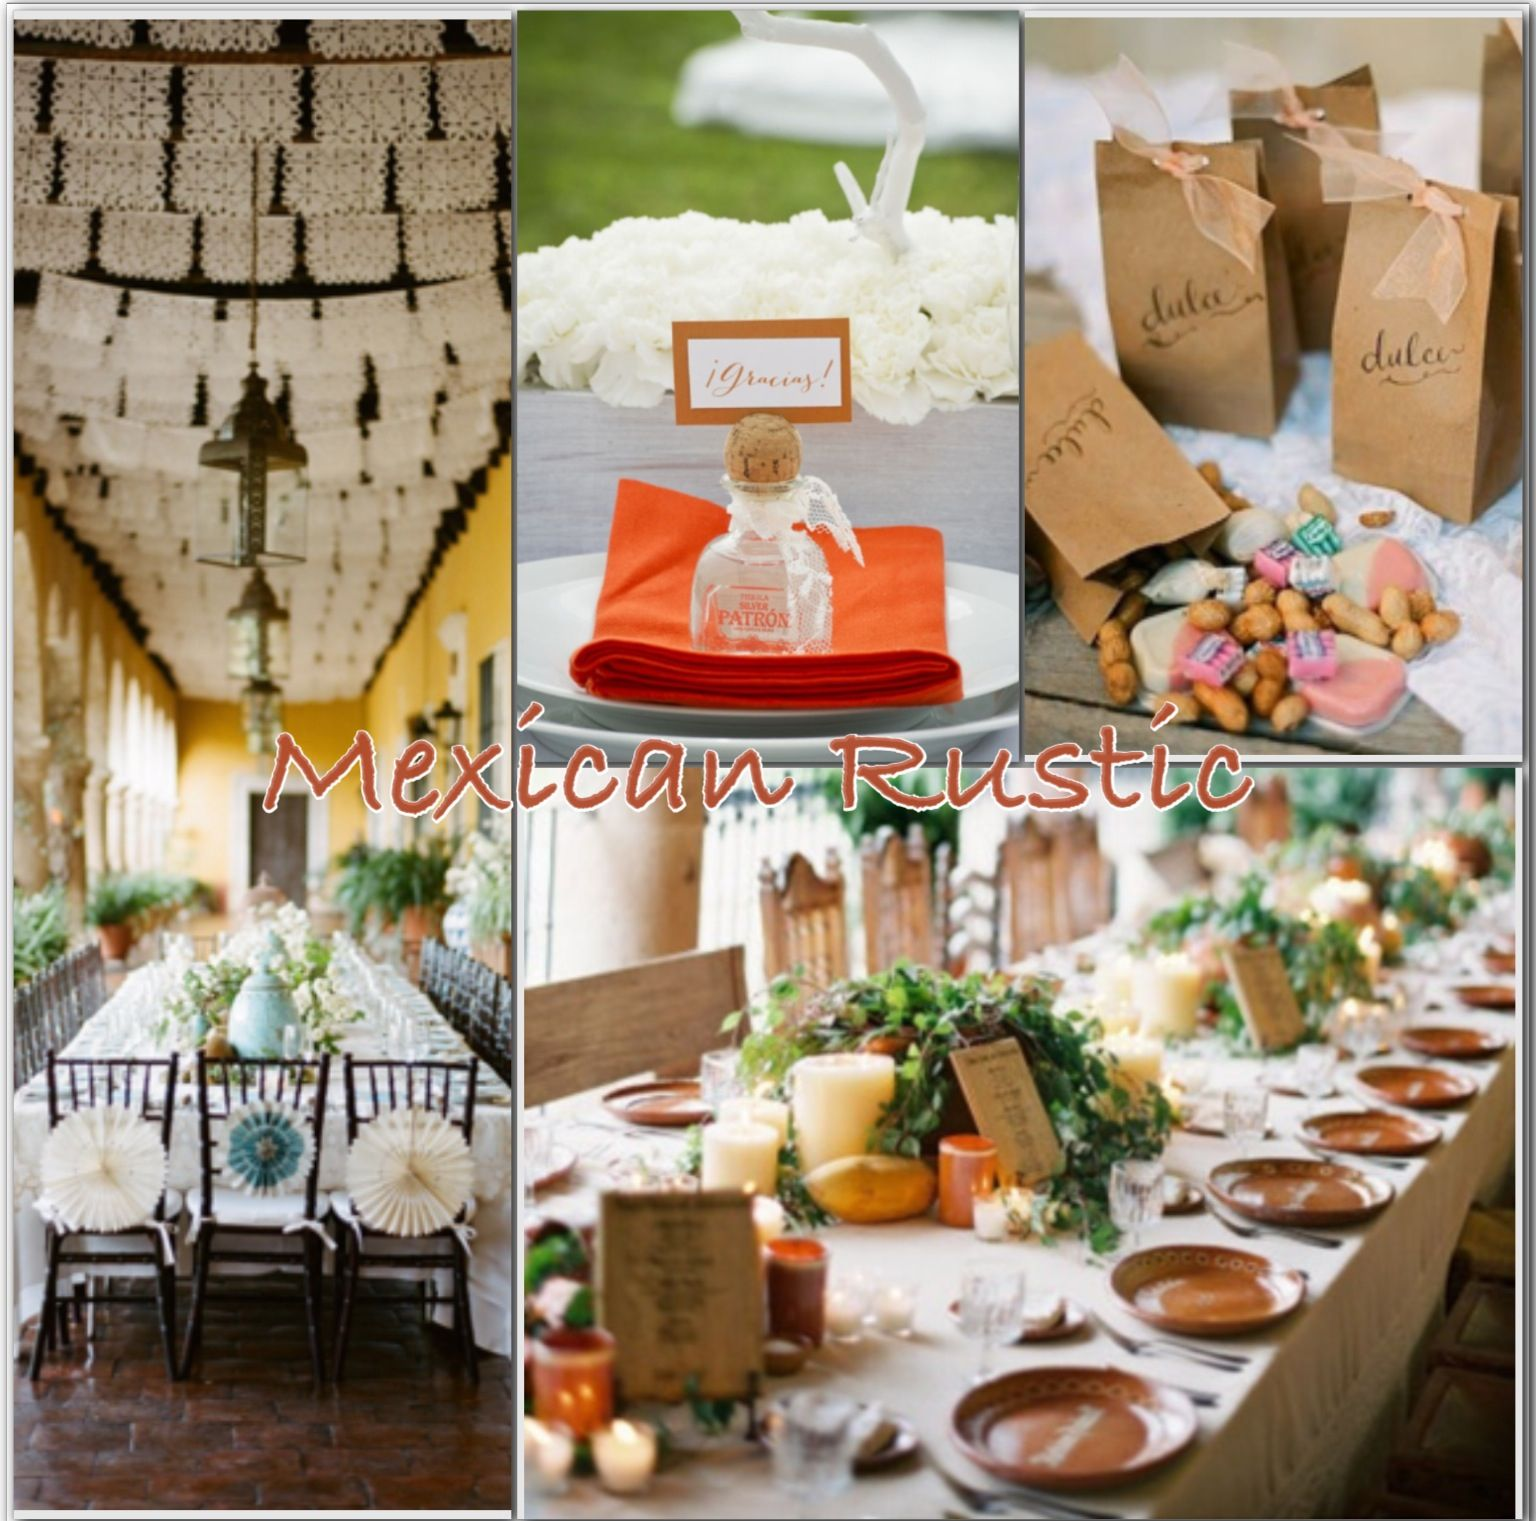 Rustic Mexican Wedding Theme: I'm In Love... Rustic Mexican Wedding Papel Picado, Dulces